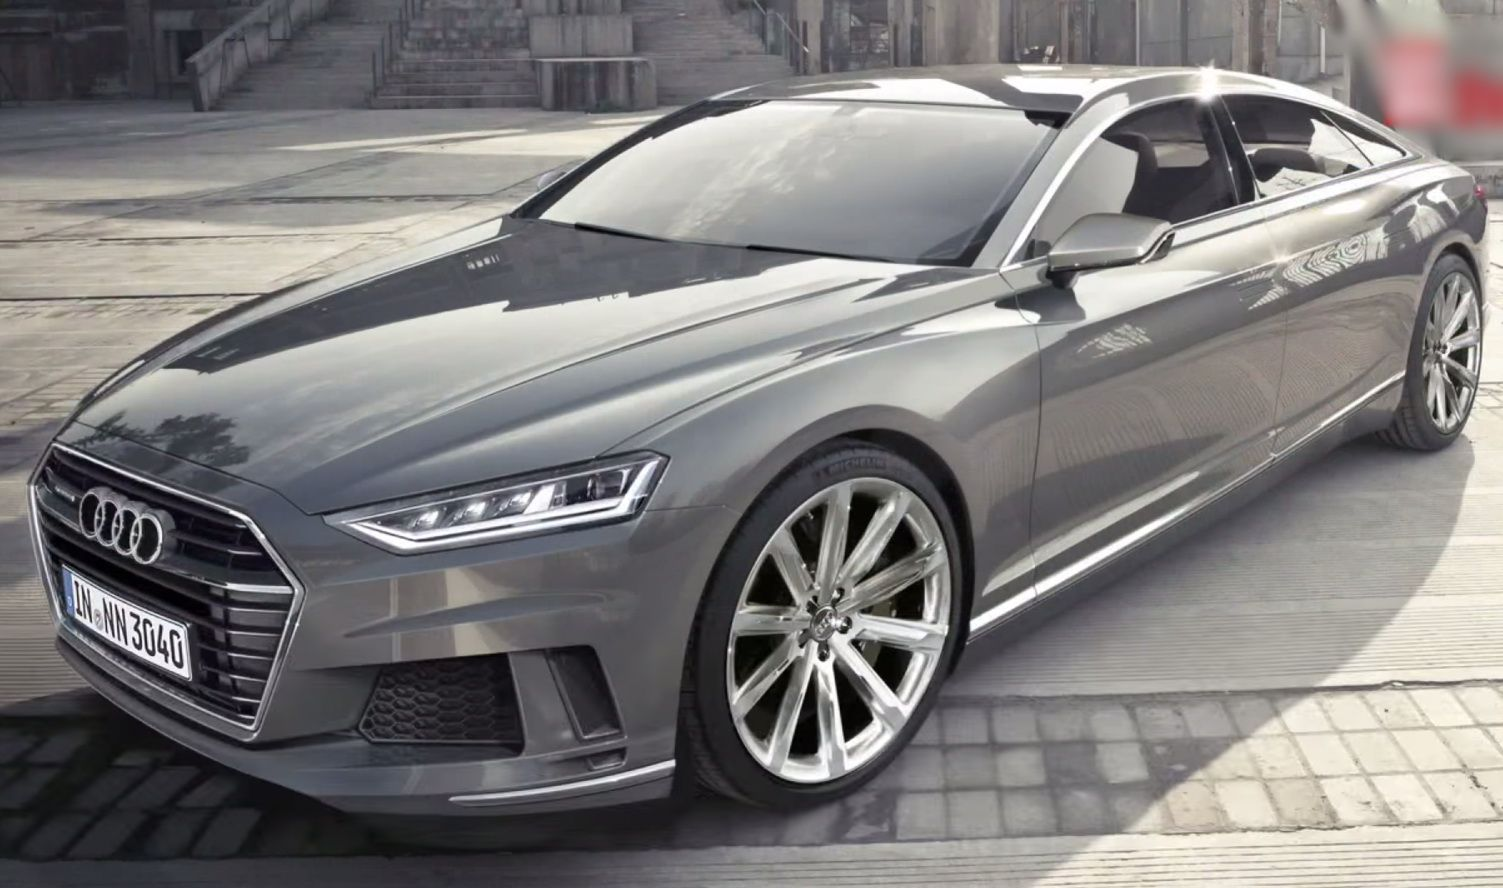 Audi A Redesign And Expected Price The Audi A Is - Audi a9 car price